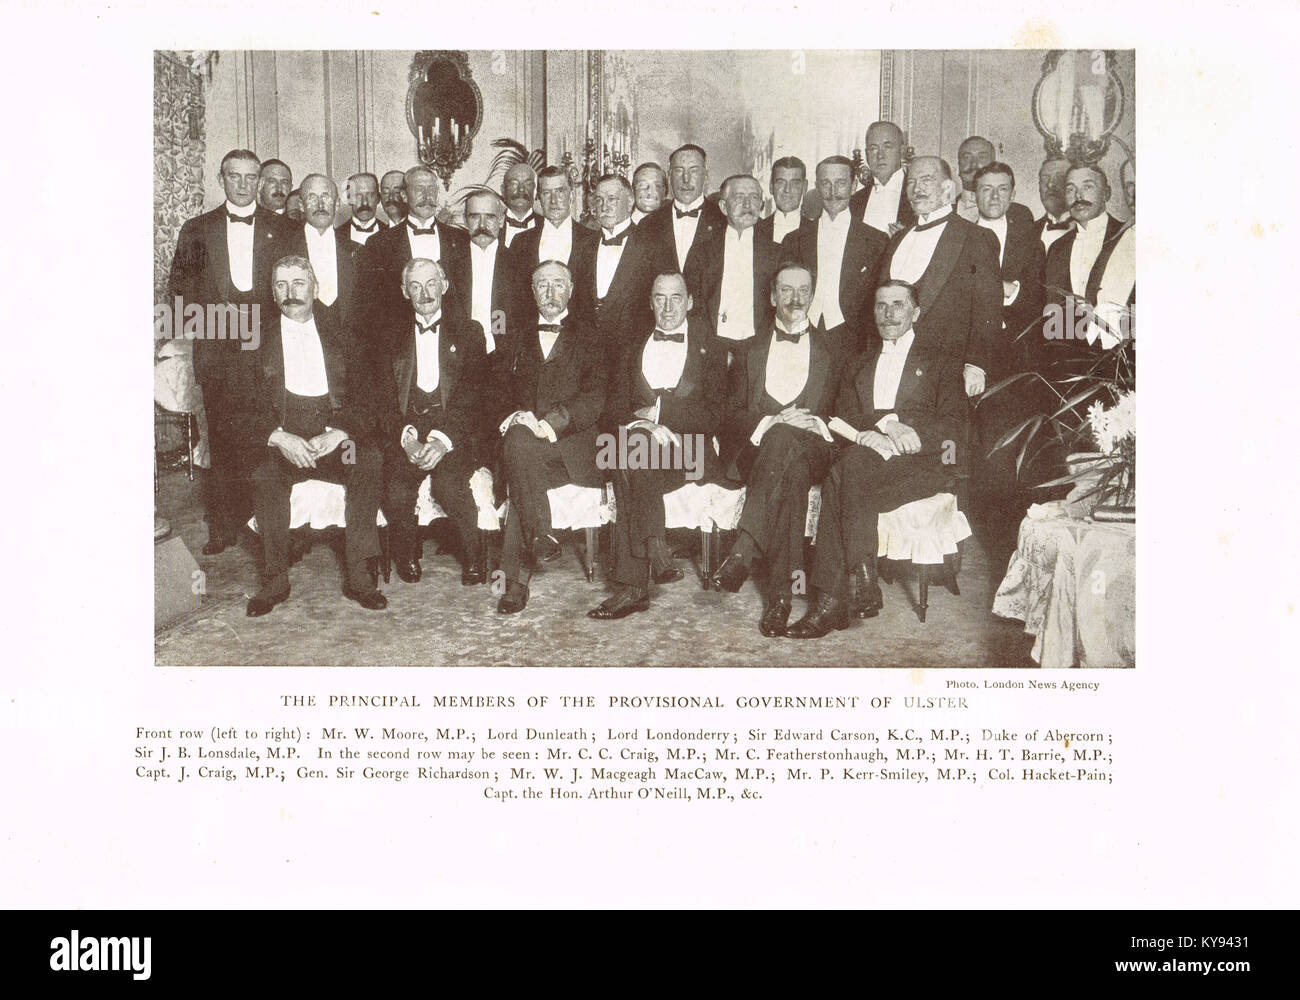 The principal members of the Provisional Government of Ulster, 1913 - Stock Image